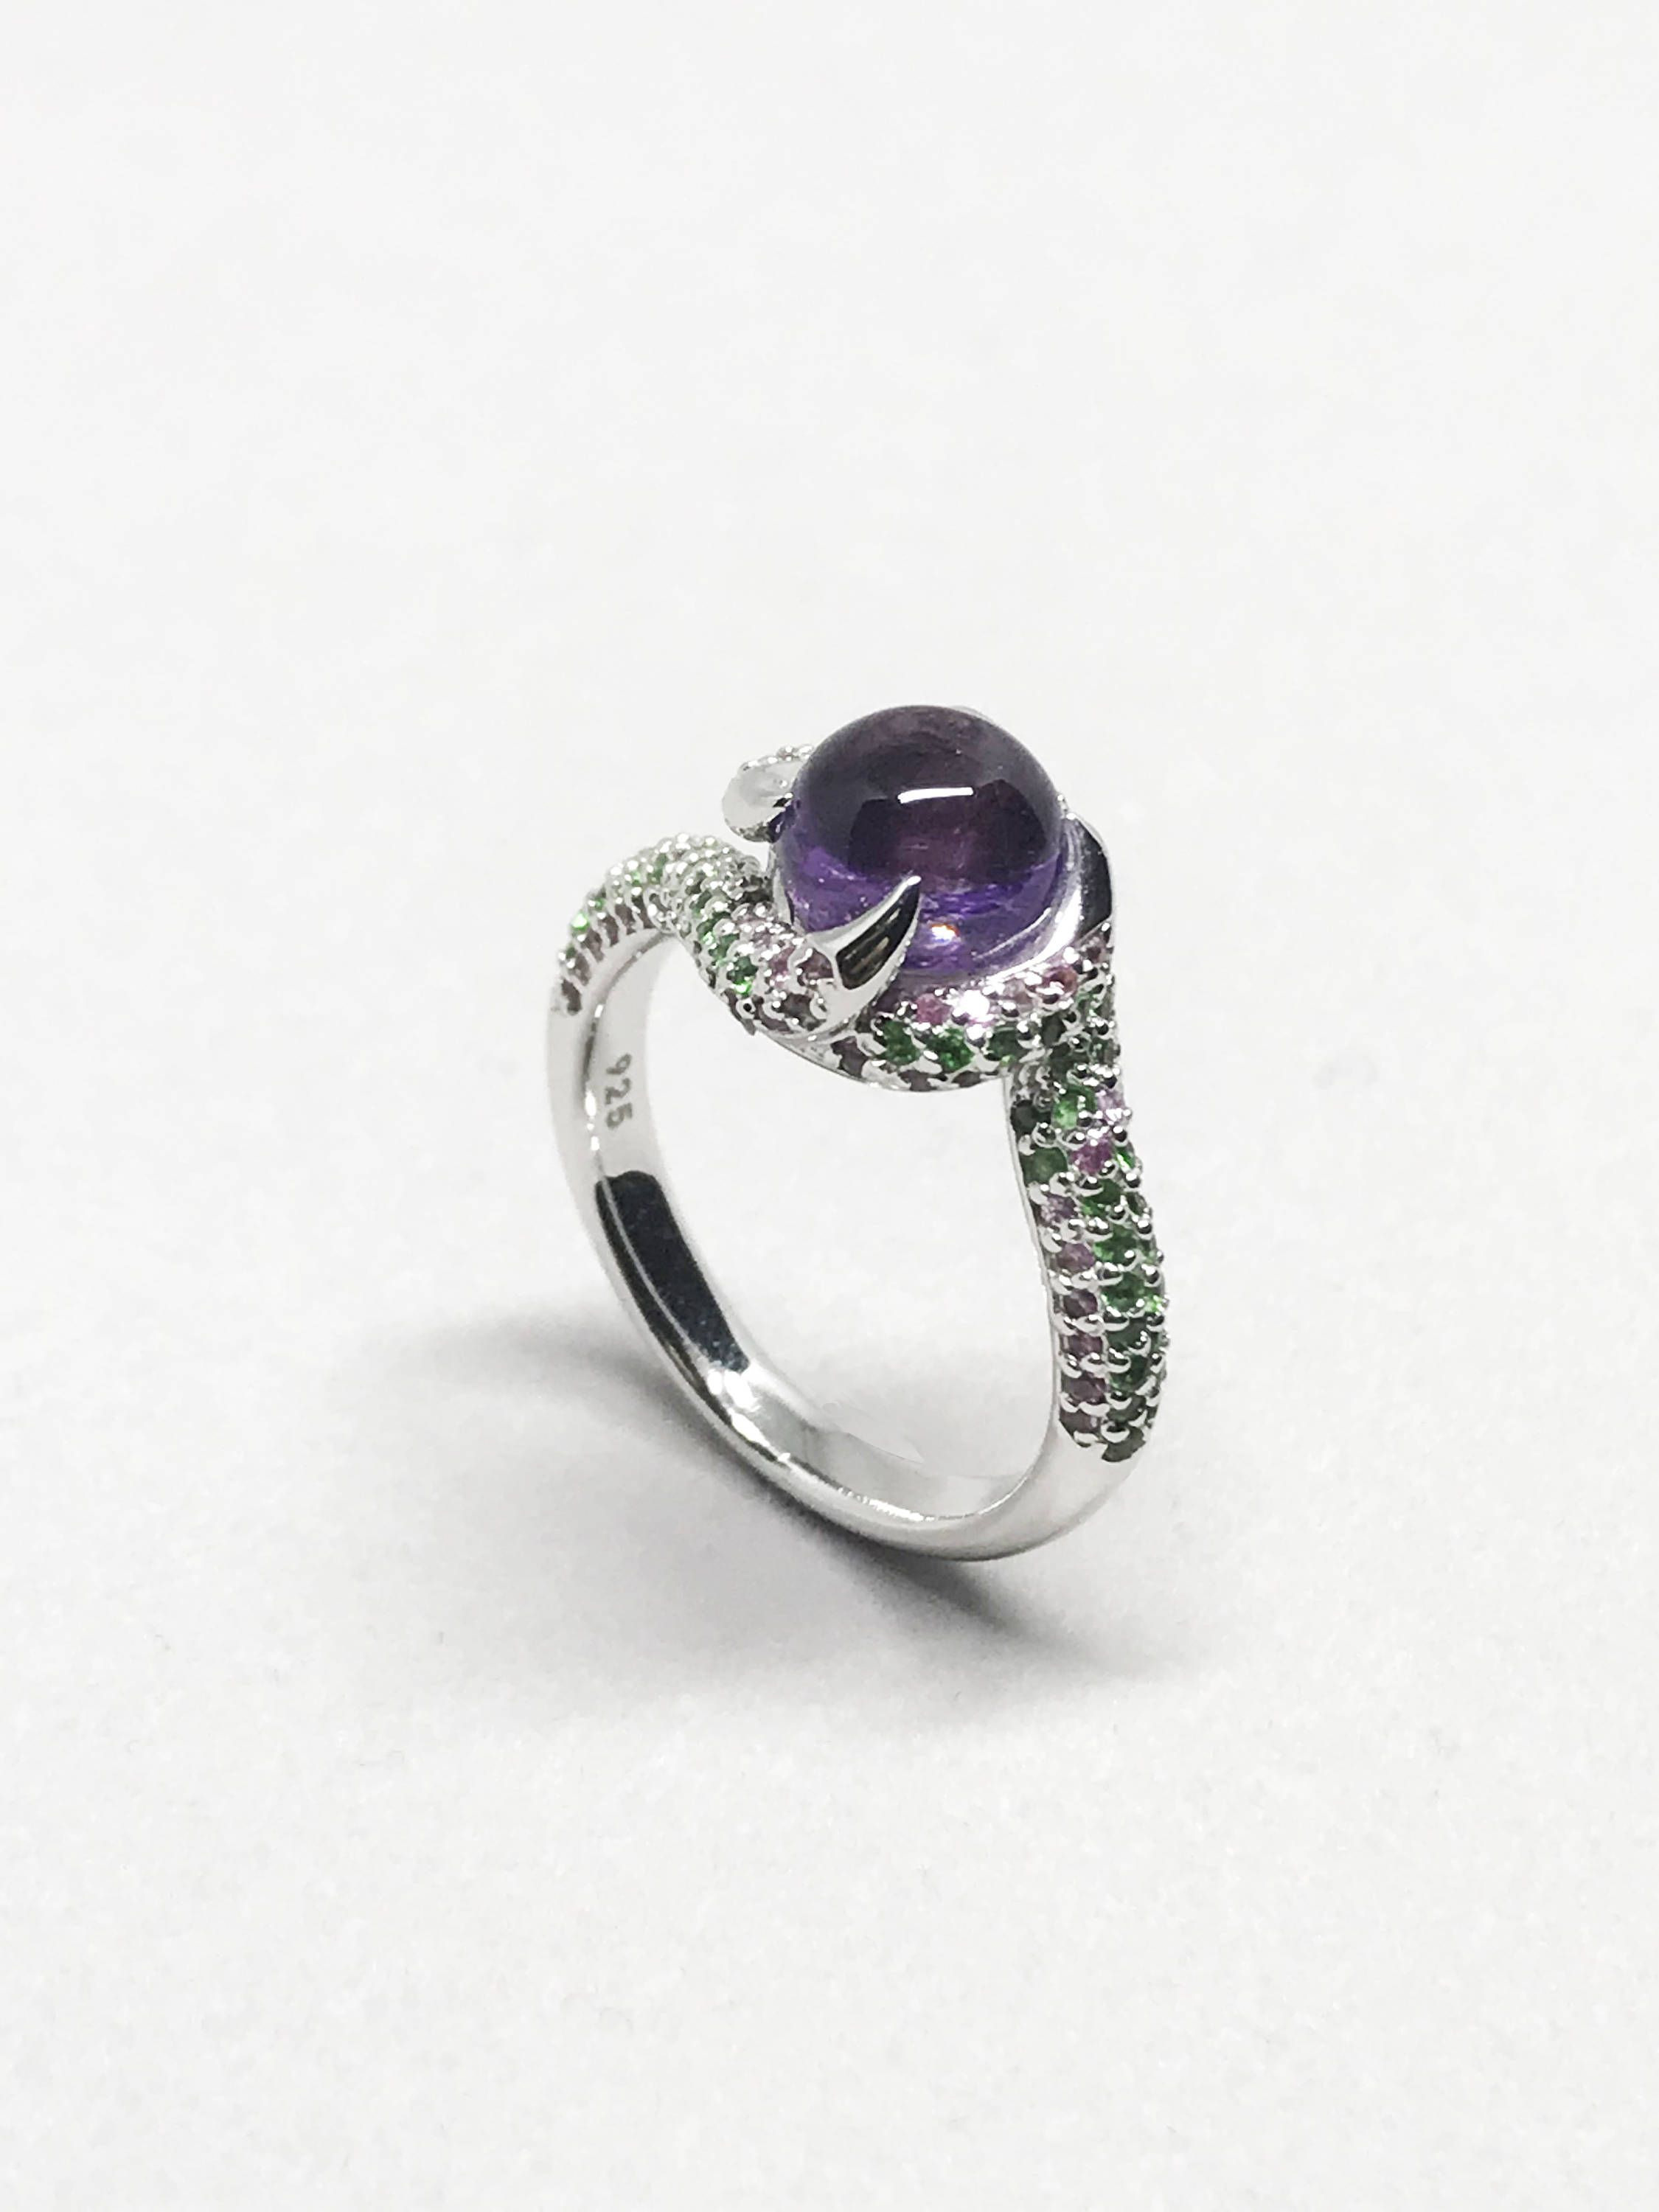 images amethist rings muse beginning and birks the skip amethyst ring en to diamond of engagement gallery